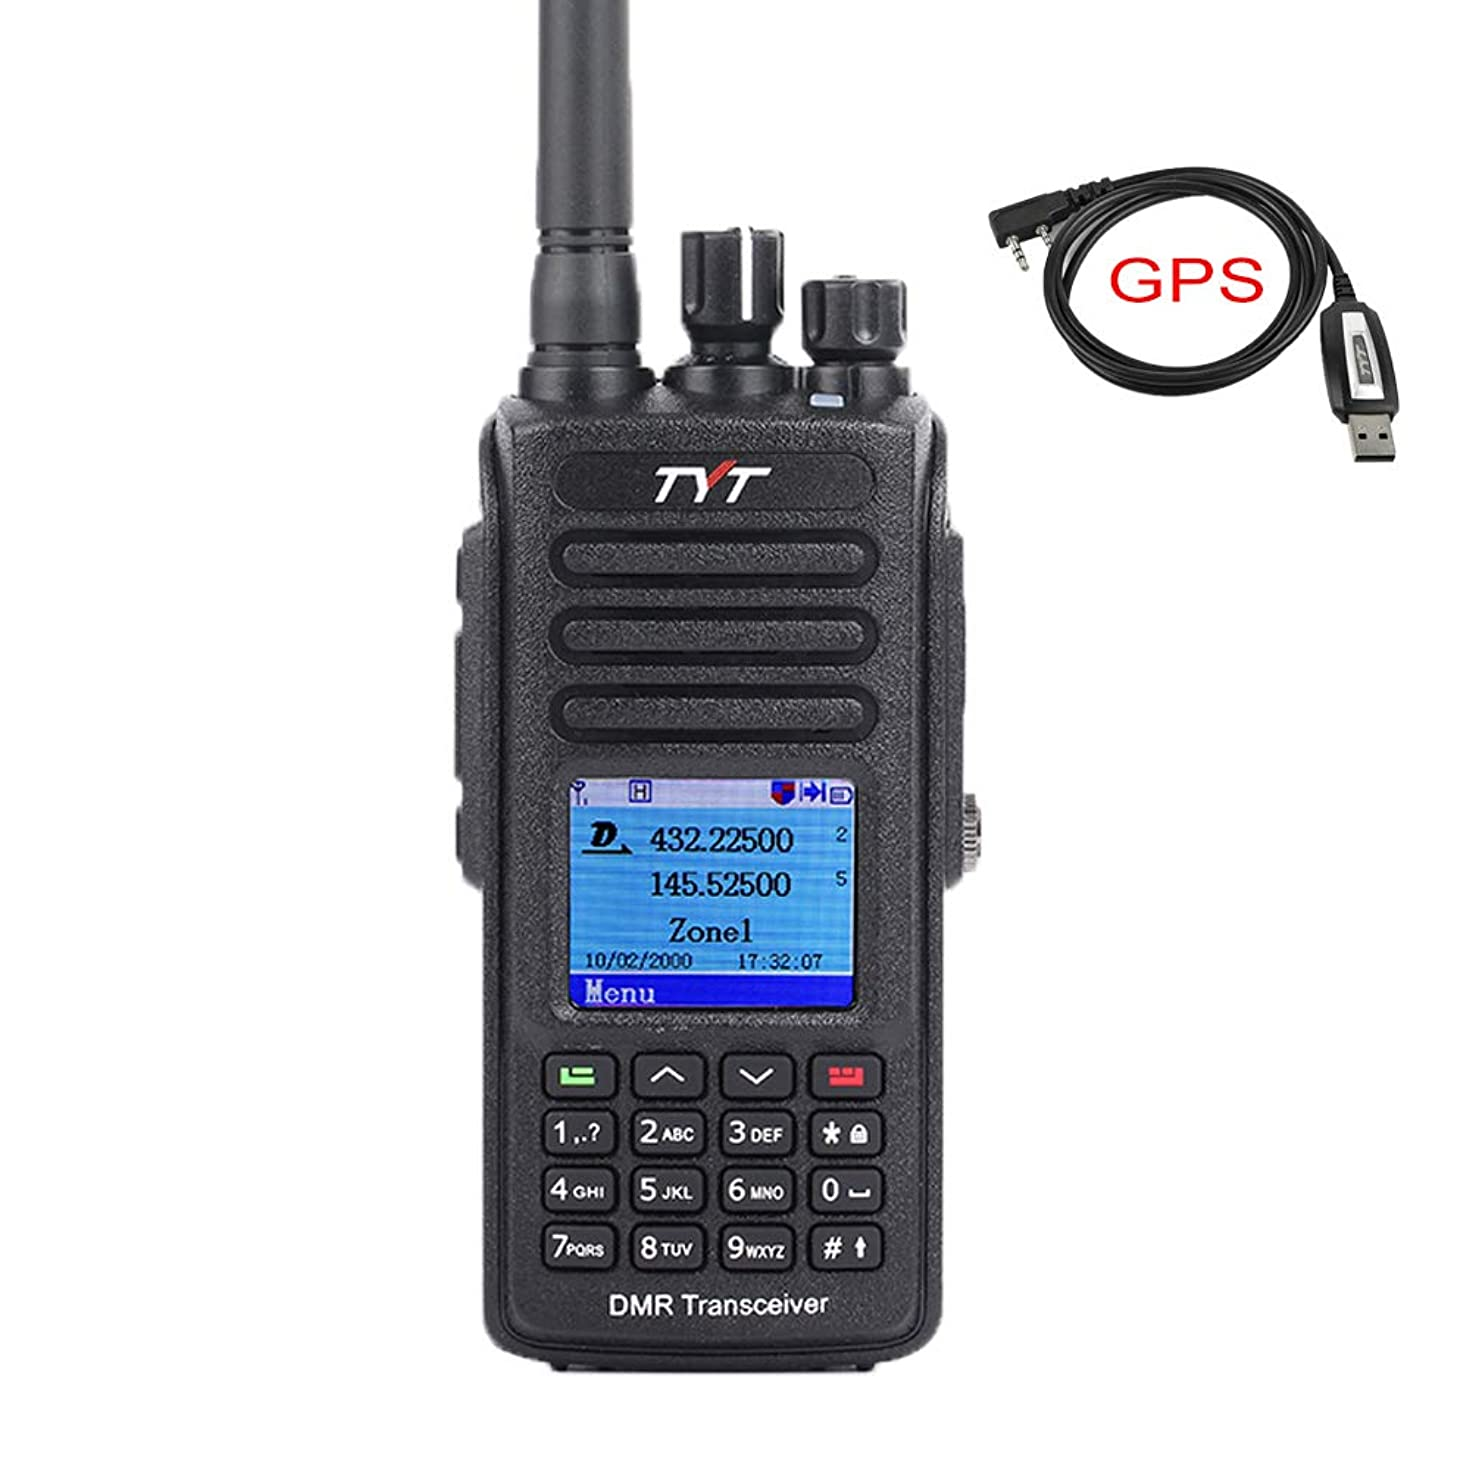 TYT MD-UV390 Dual Band 136-174MHz/400-480MHz GPS Handheld Two Way Radio VHF/UHF Ham Amateur